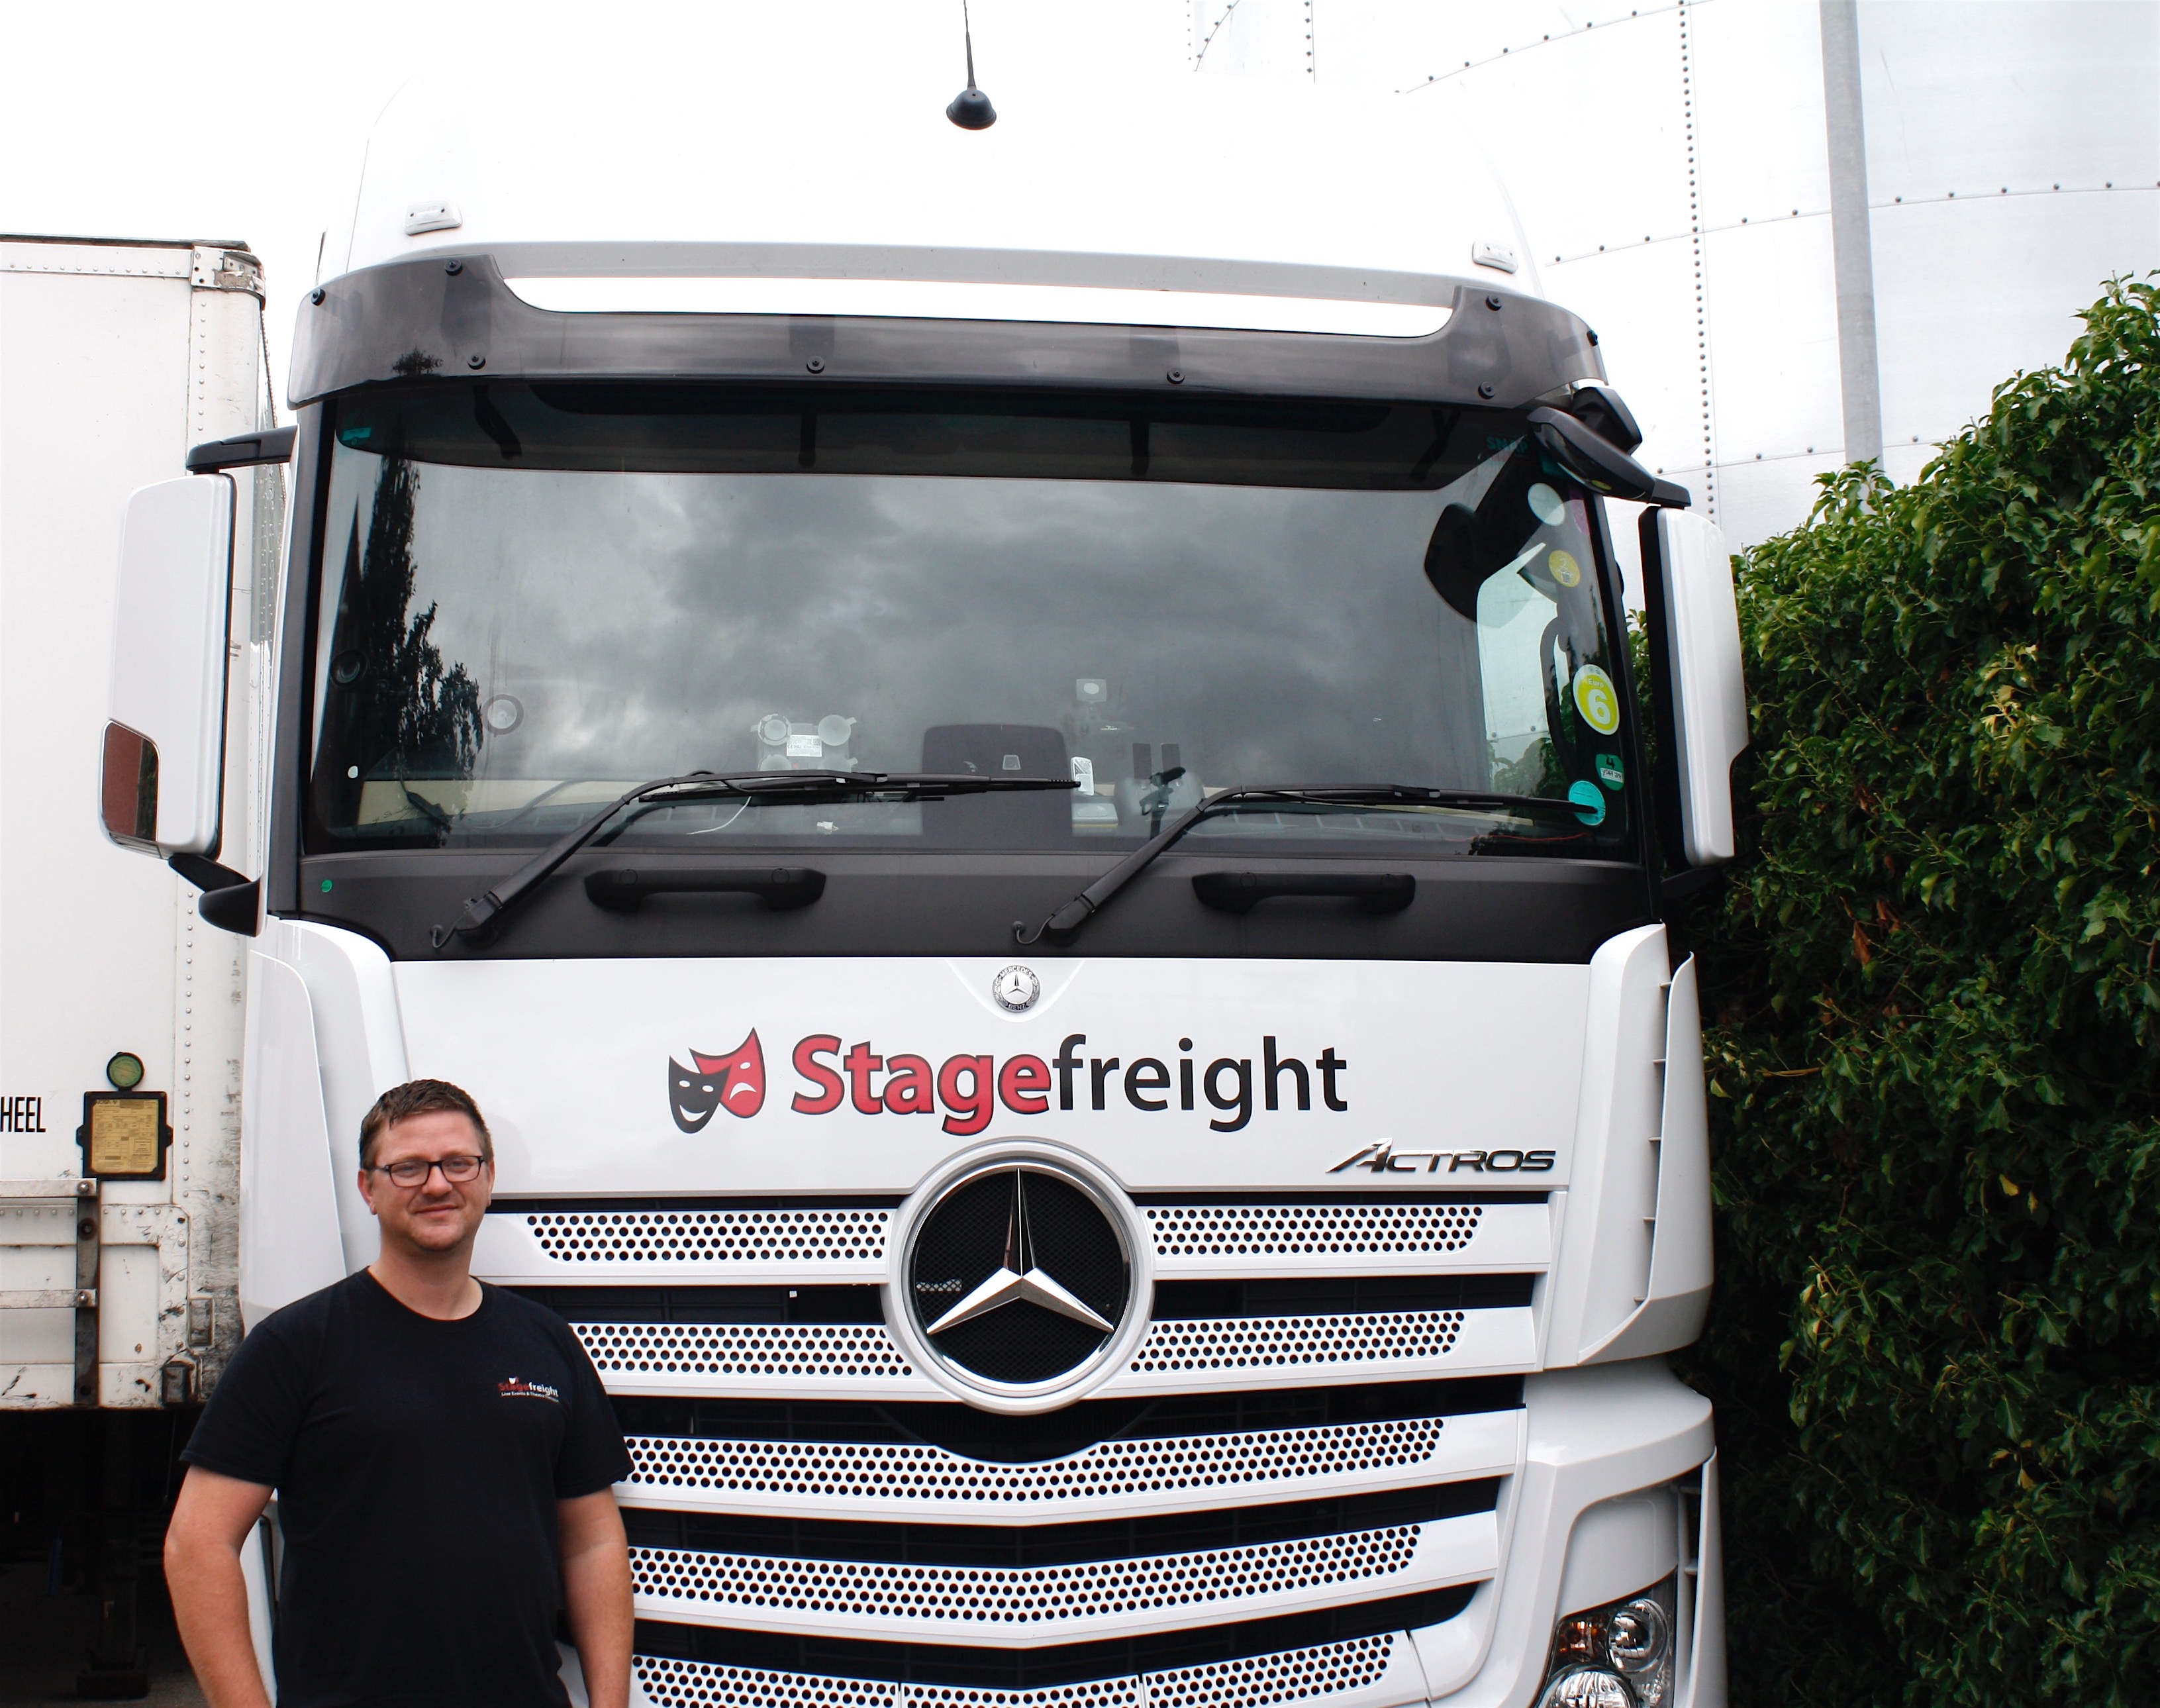 Stagefreight driver ant hayes with his truck